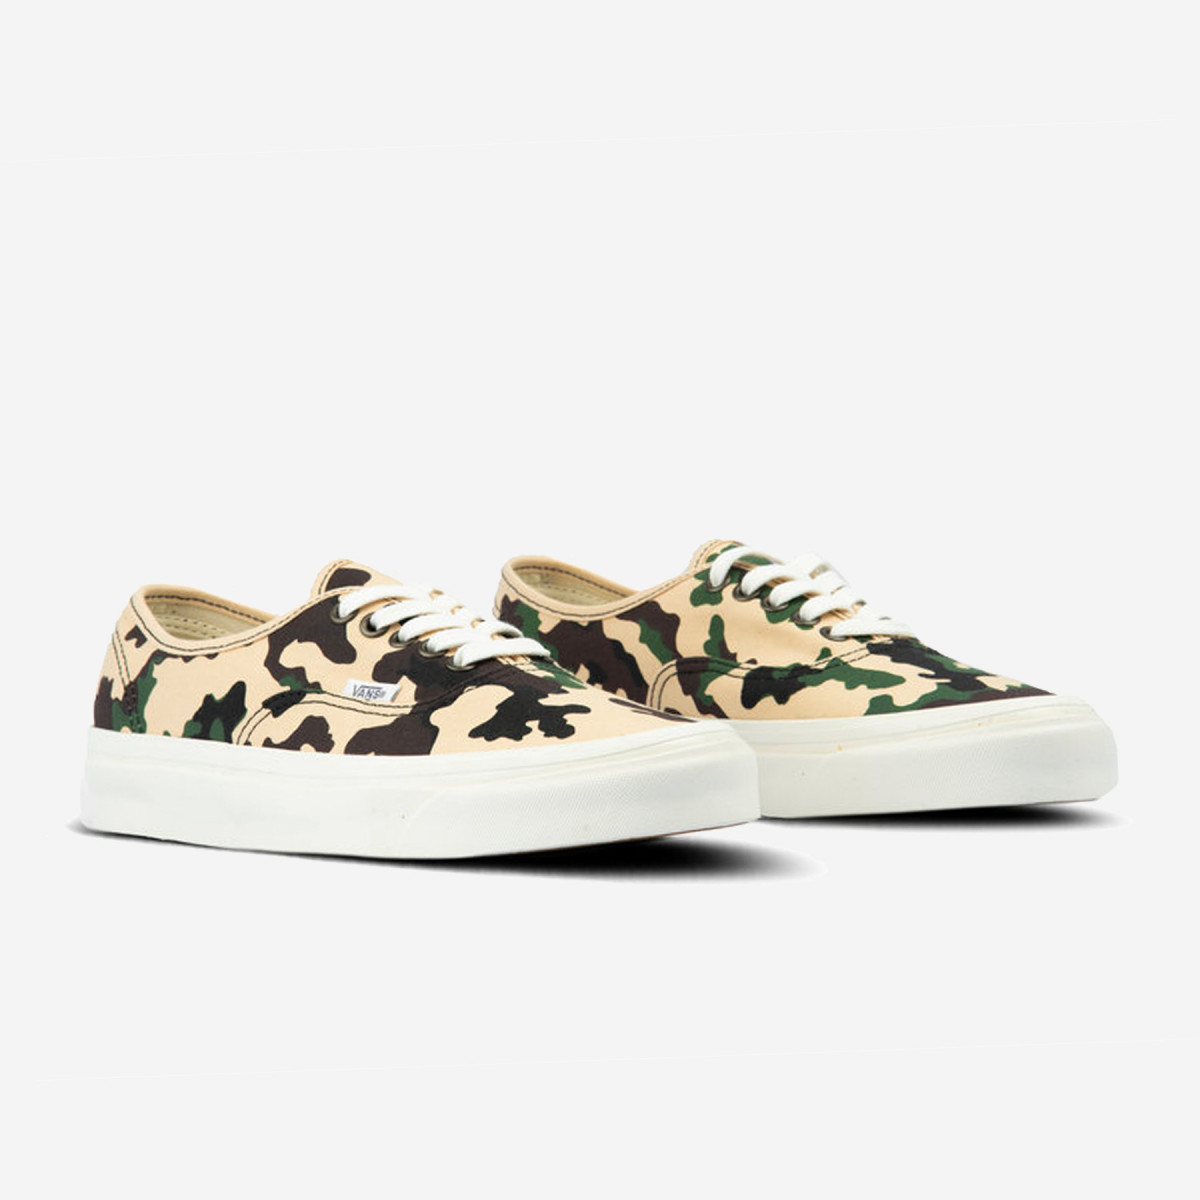 "Vans Authentic 44 DX Anaheim Factory OG ""Camo"""